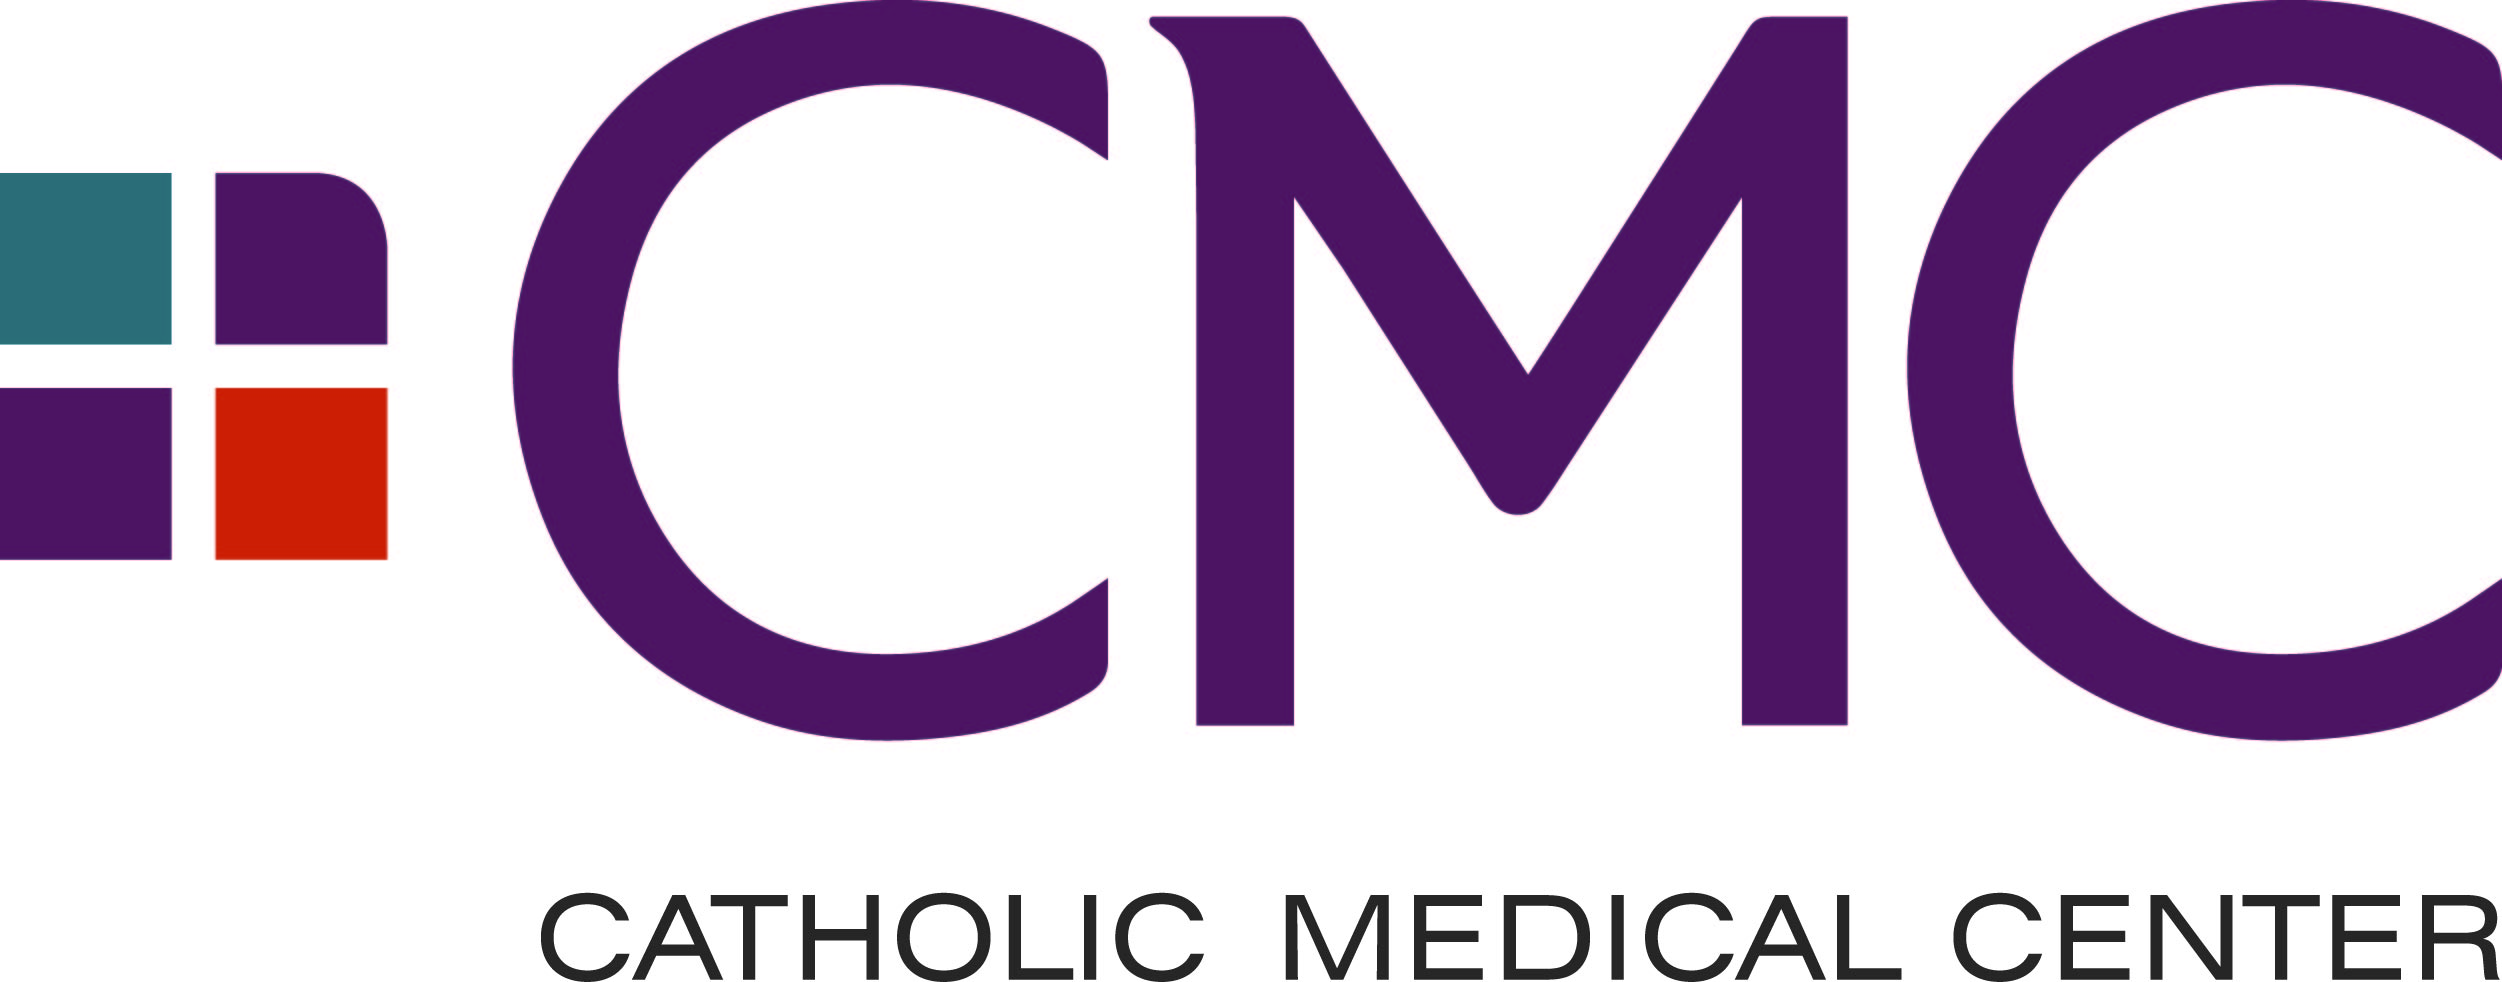 New Hampshire Donation being Directed to Catholic Medical Center